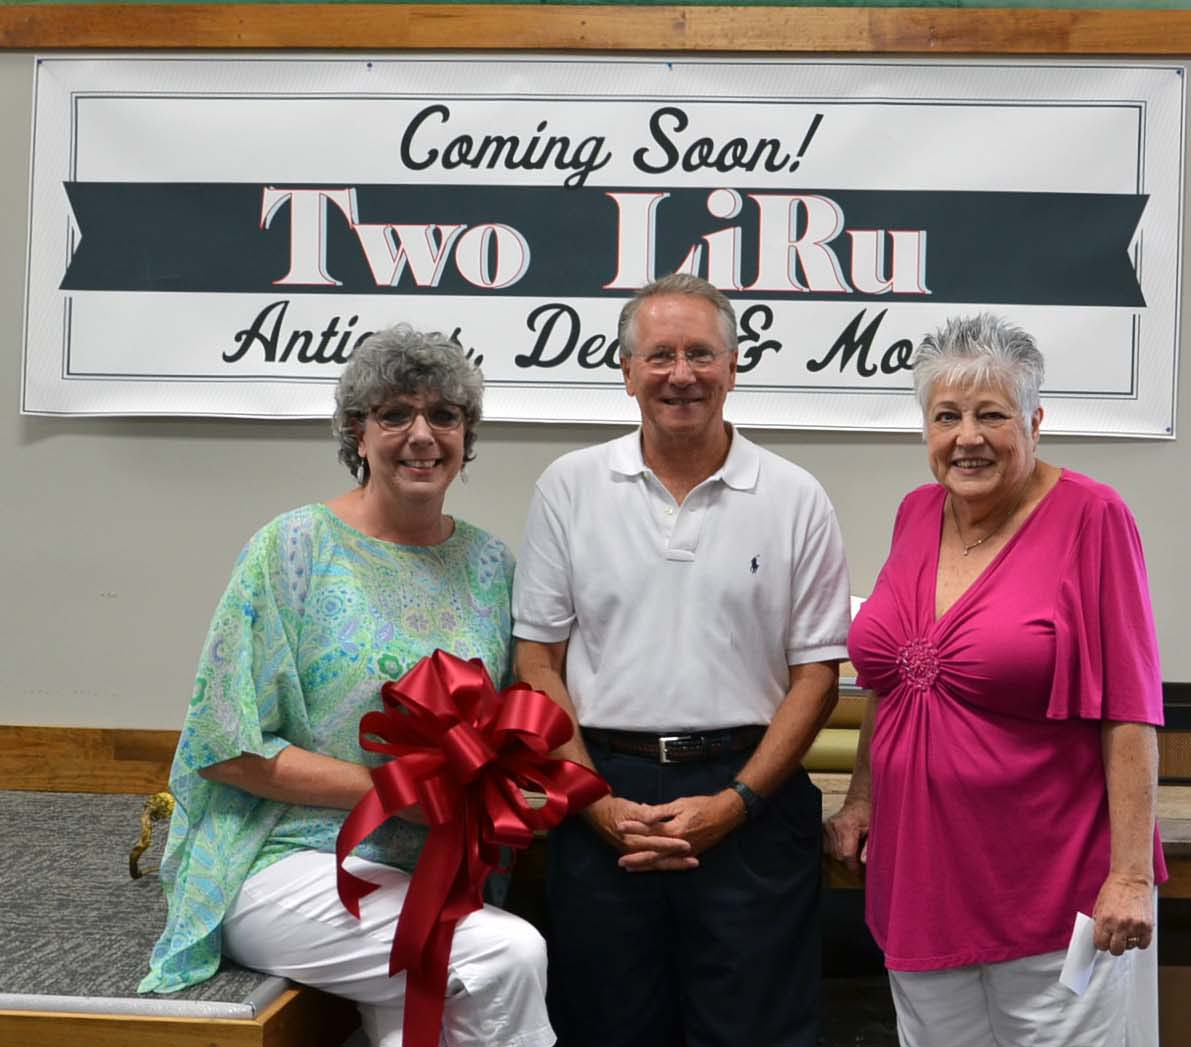 Ribbon Cutting for Two LiRu Antiques and Decor2